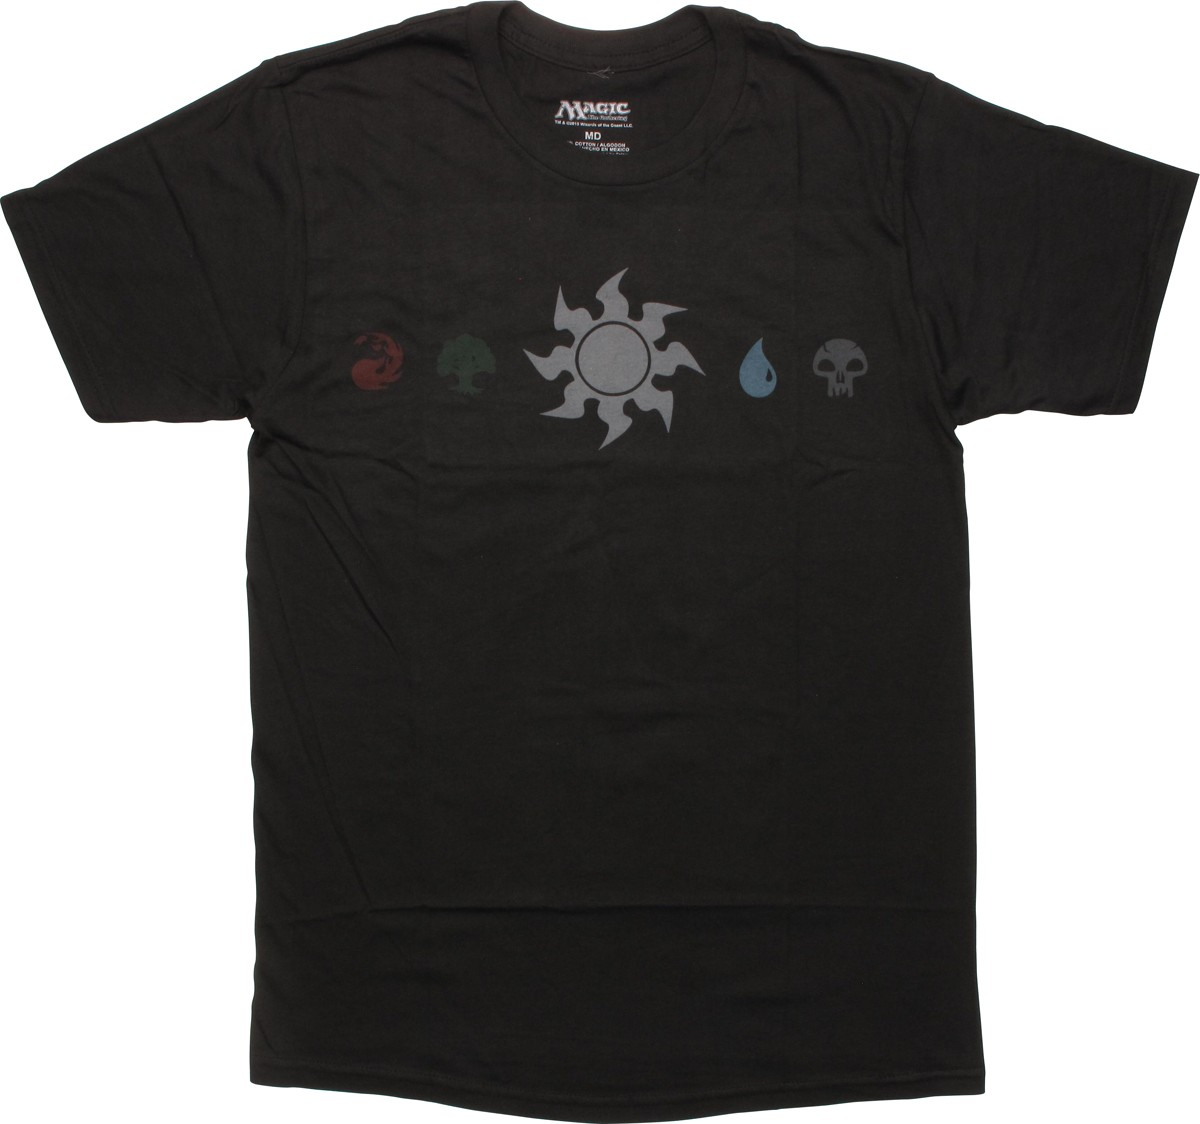 Shop by category gt video game t shirts gt magic the gathering gt magic